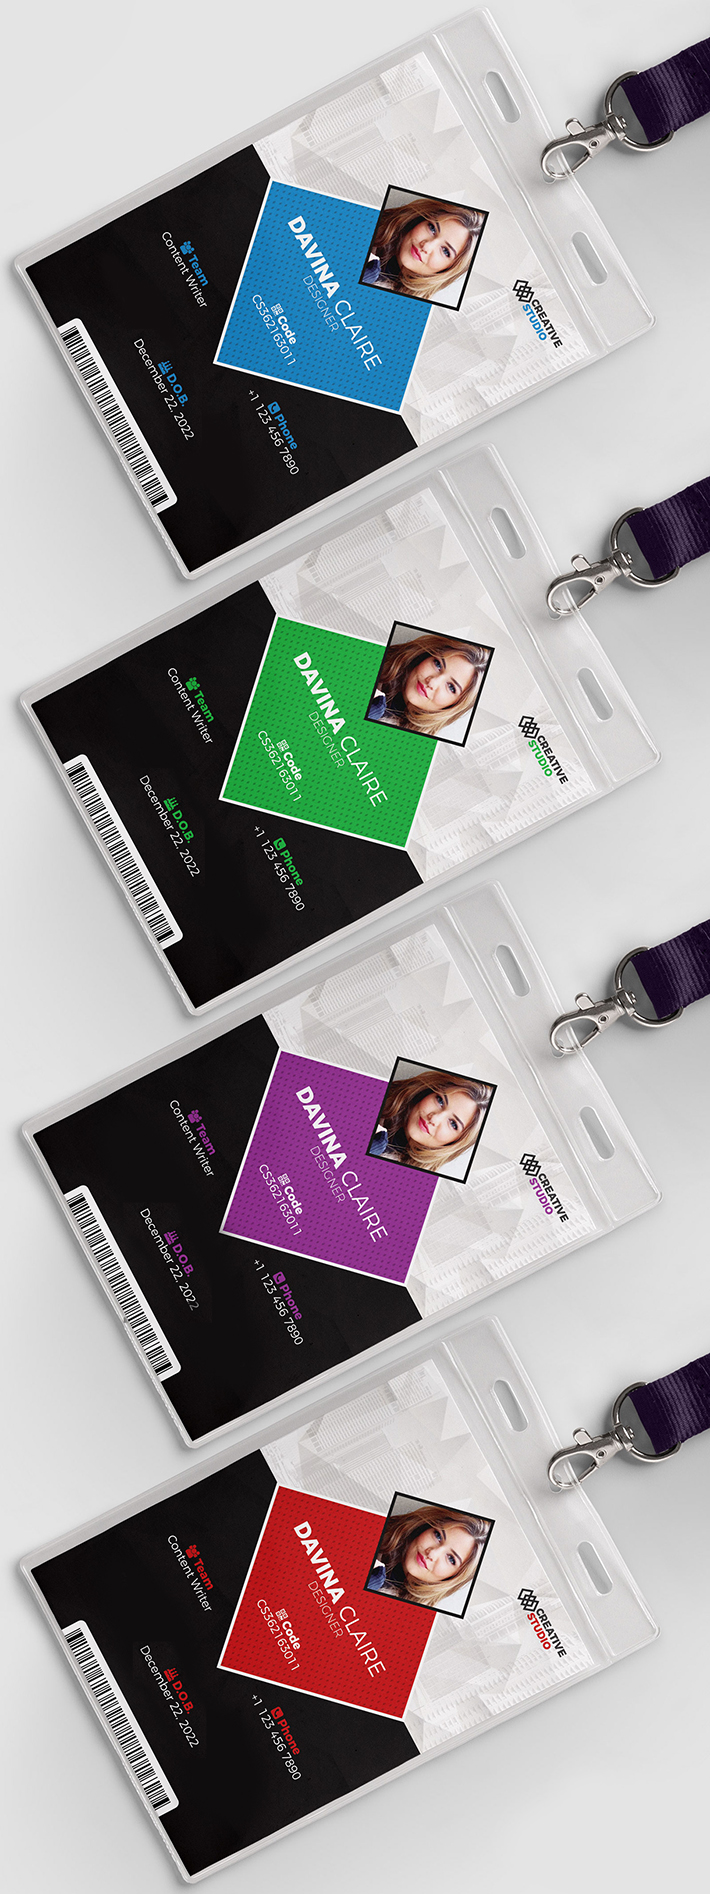 Descargar gratis Awesome Identity Card Template PSD (Freebie)